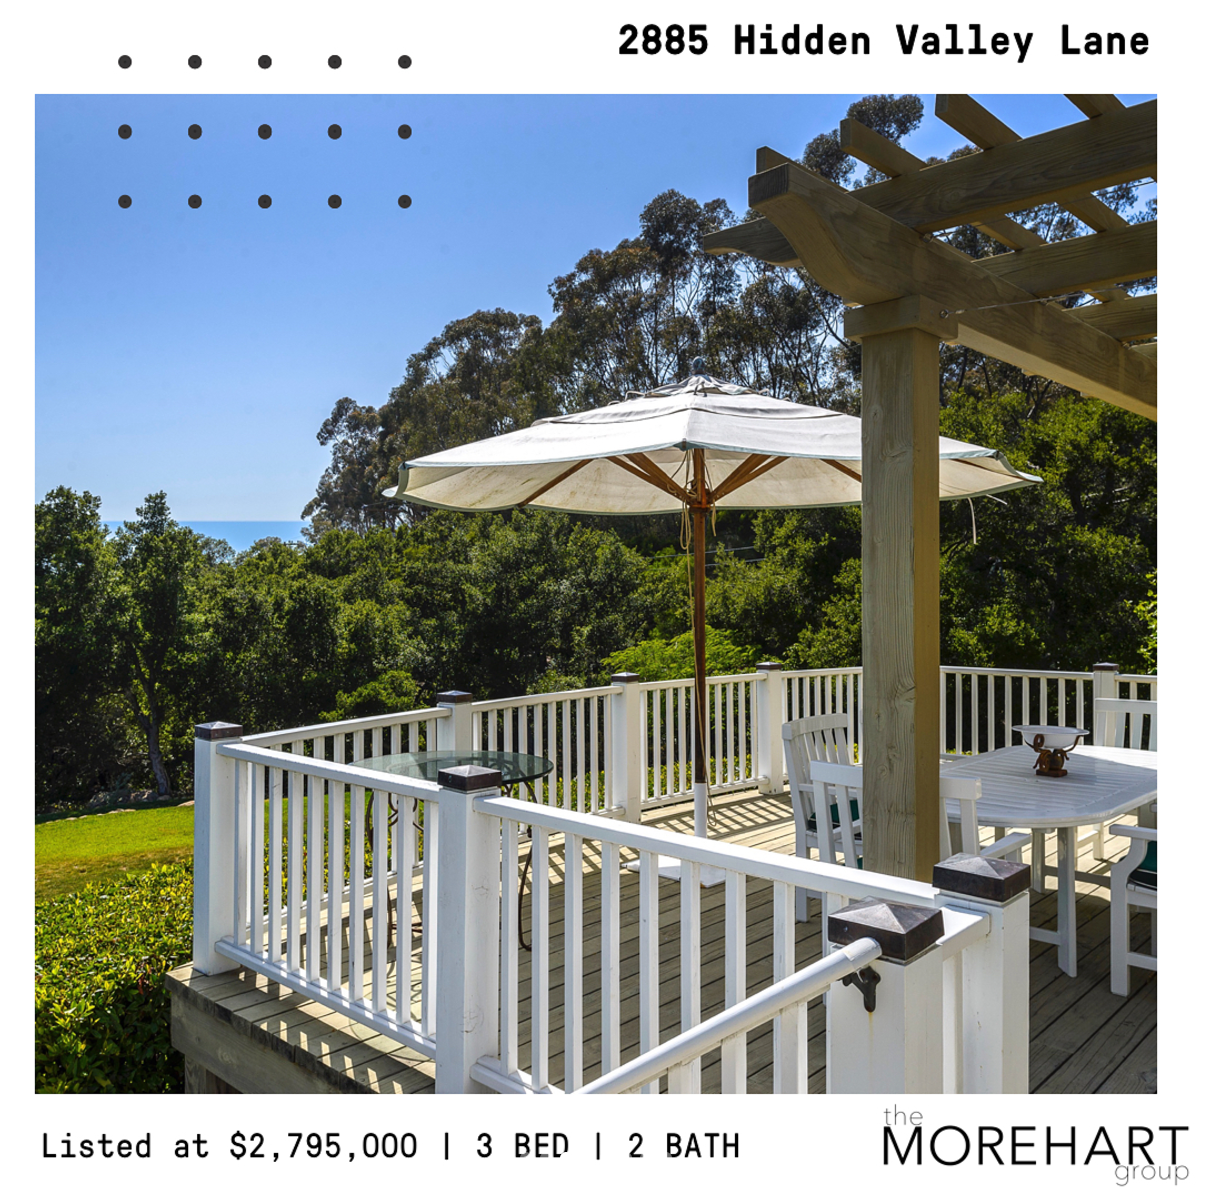 2885 Hidden Valley Lane - SOLD - Montecito Lifestyle